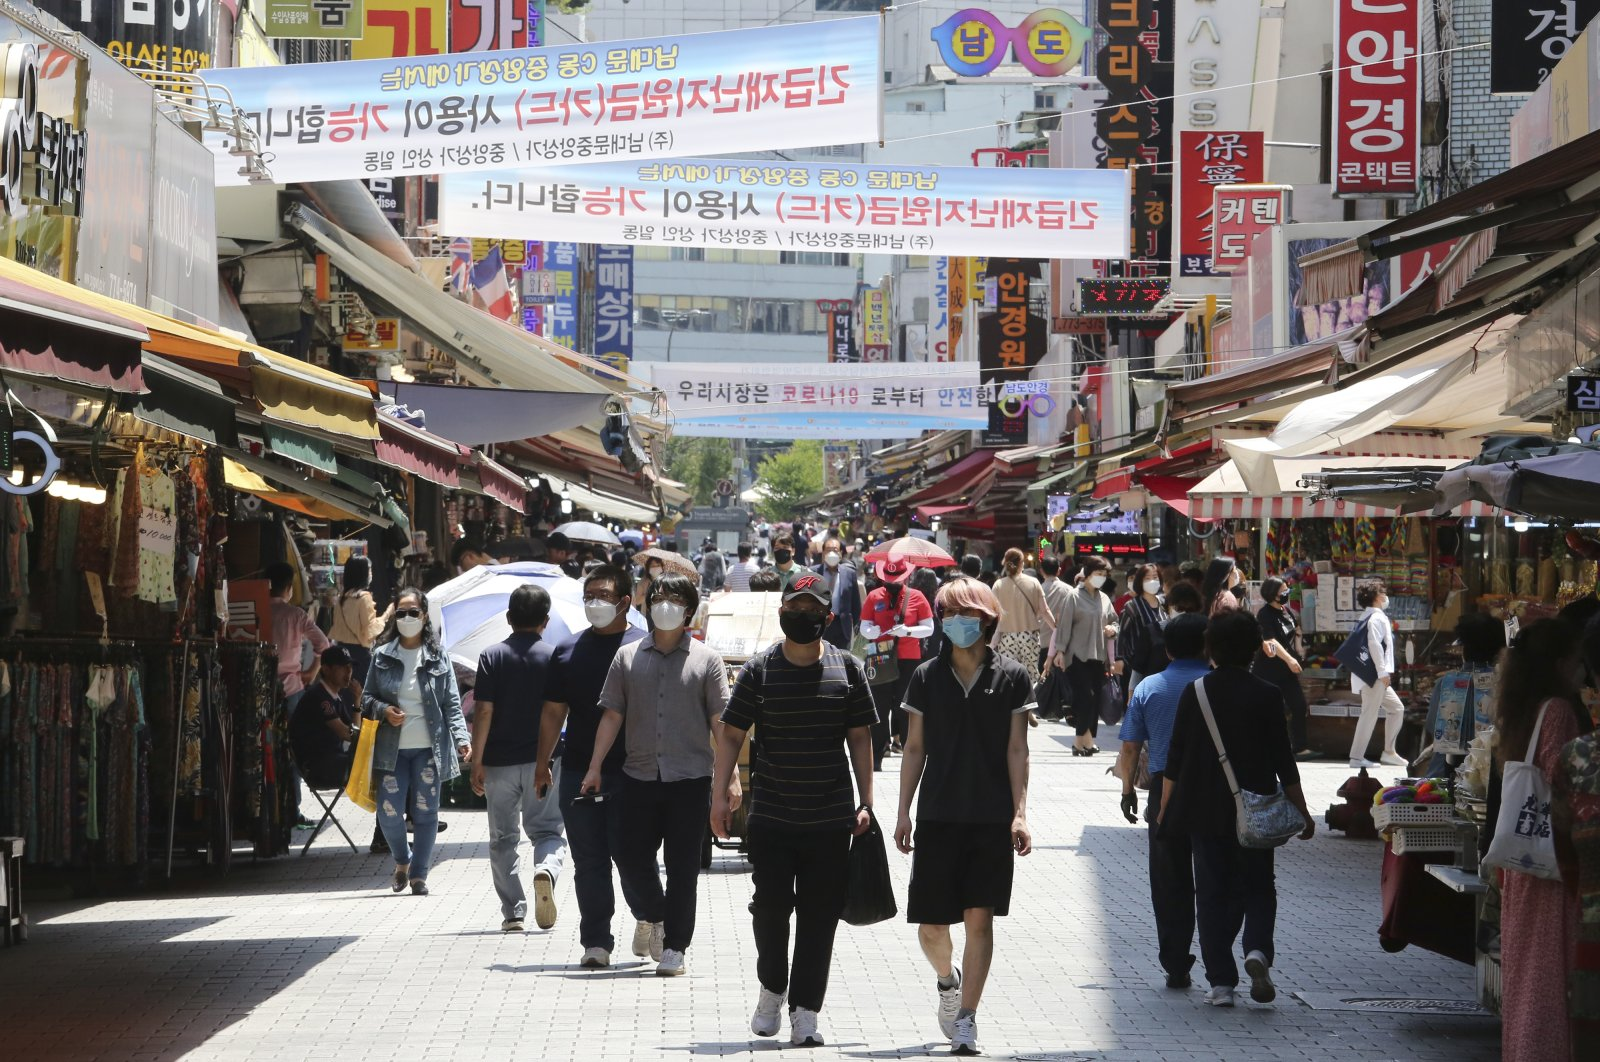 People walk in a shopping district in Seoul, South Korea, June 11, 2020. (AP Photo)